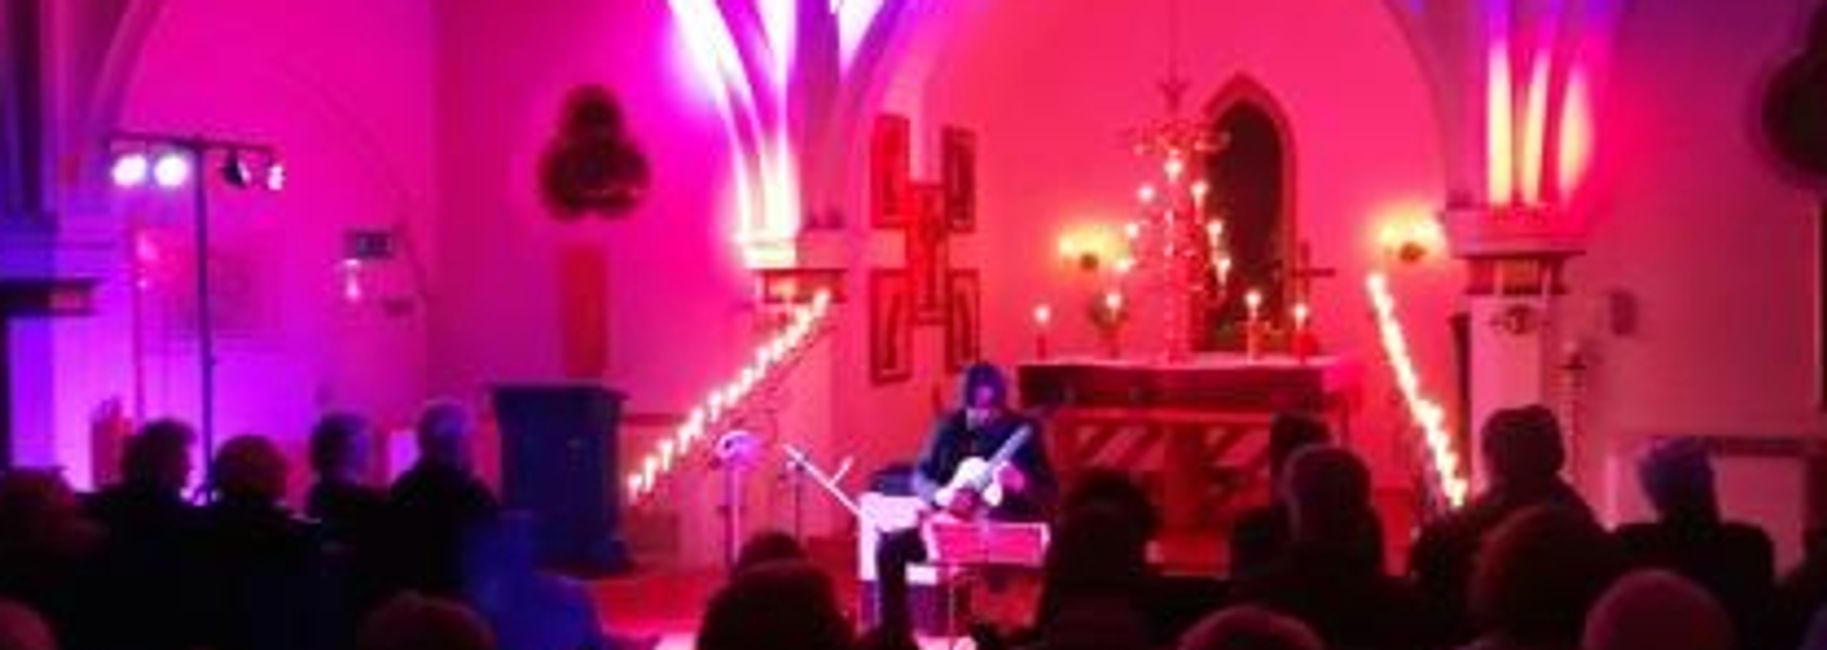 Mike and Jon's Concerts at the Nordic Church